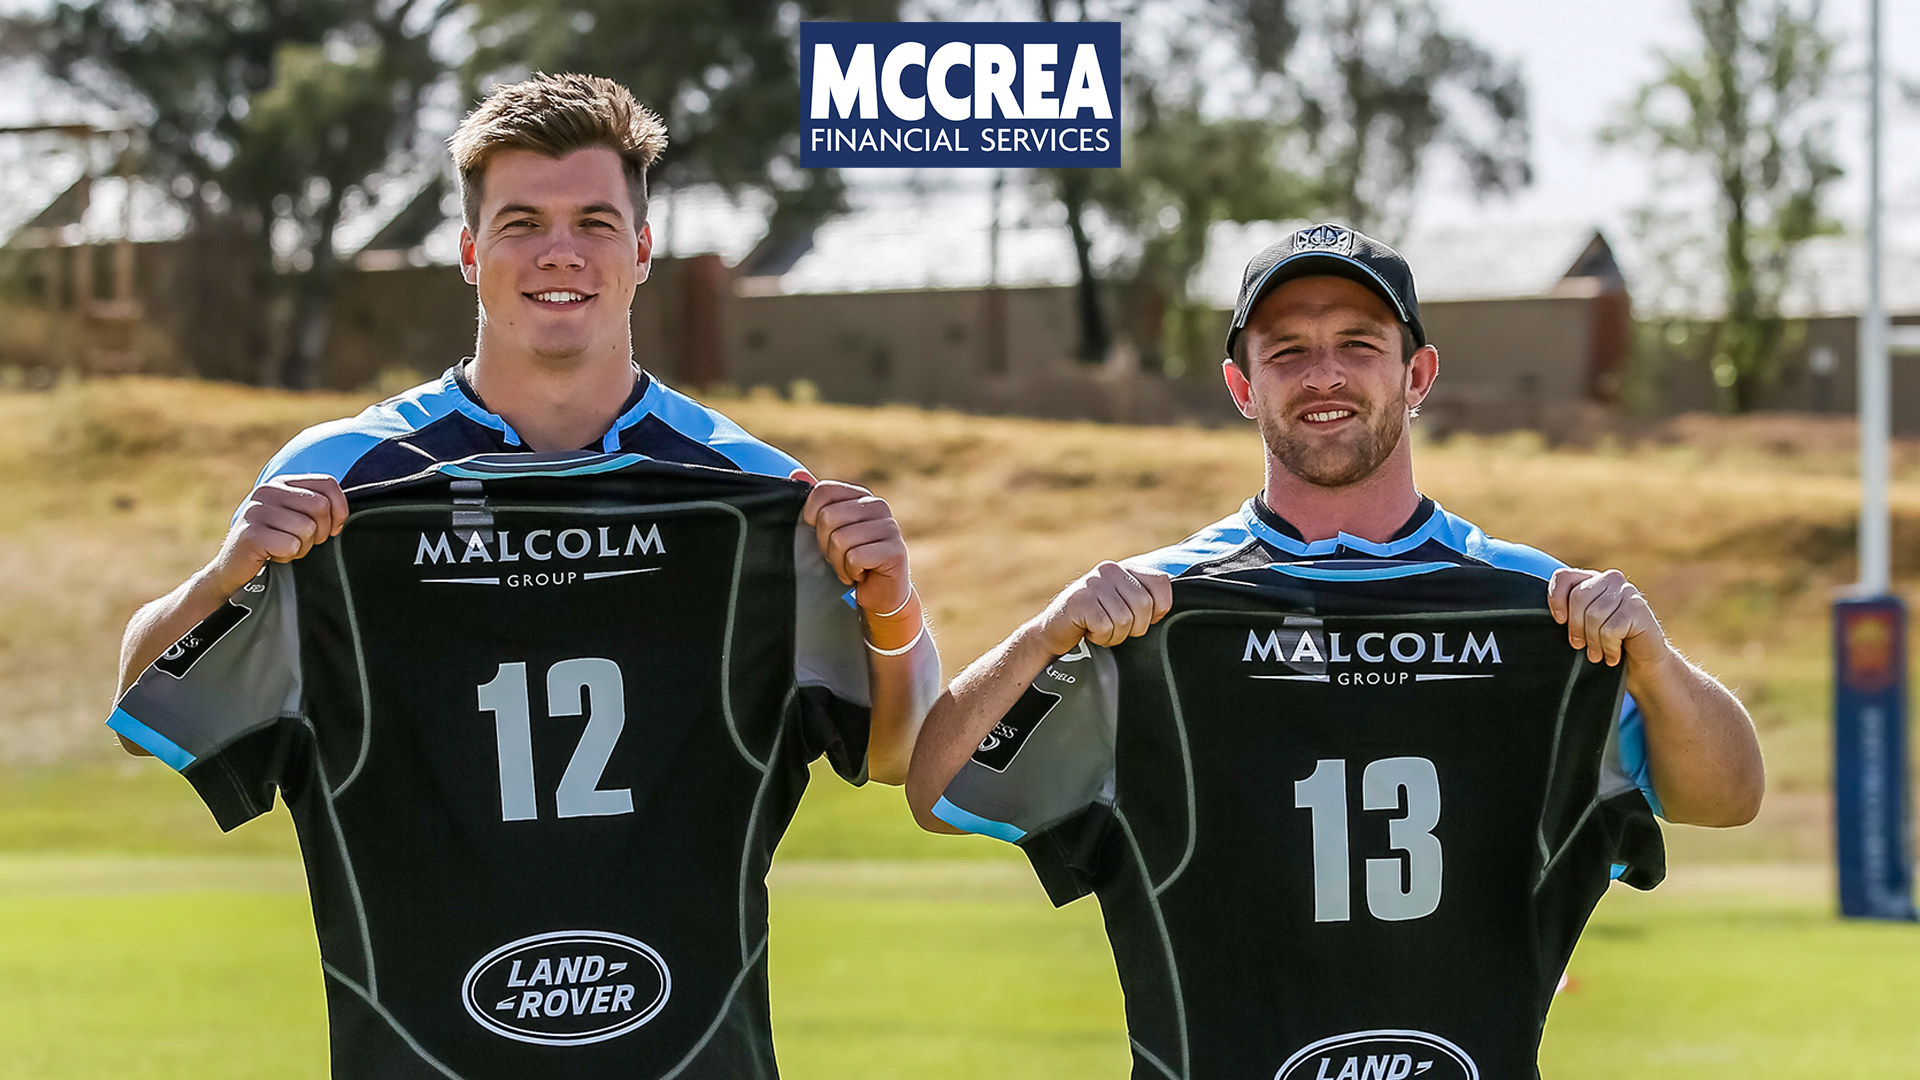 McCrea Financial Services agree a new two-year contract with Glasgow Warriors